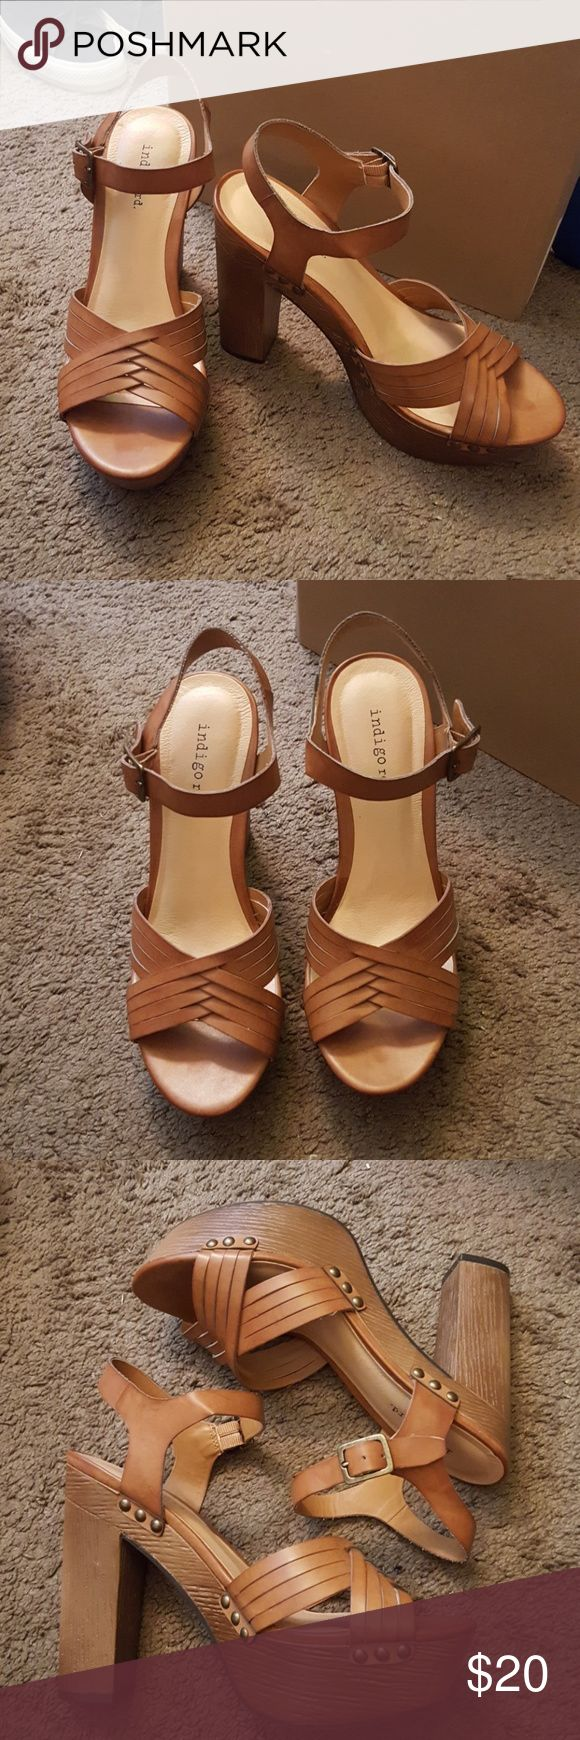 NWOT indigo rd. Tan High Heels Shoes Size 7.5 NWOT indigo rd. Tan Block High Heels Shoes Size 7.5 ( 7 1/2). New and never worn. Material is like a fake leather. Color is a tan/brown. Cute block high heel! I believe this style is called Irkaily. indigo rd. Shoes Heels